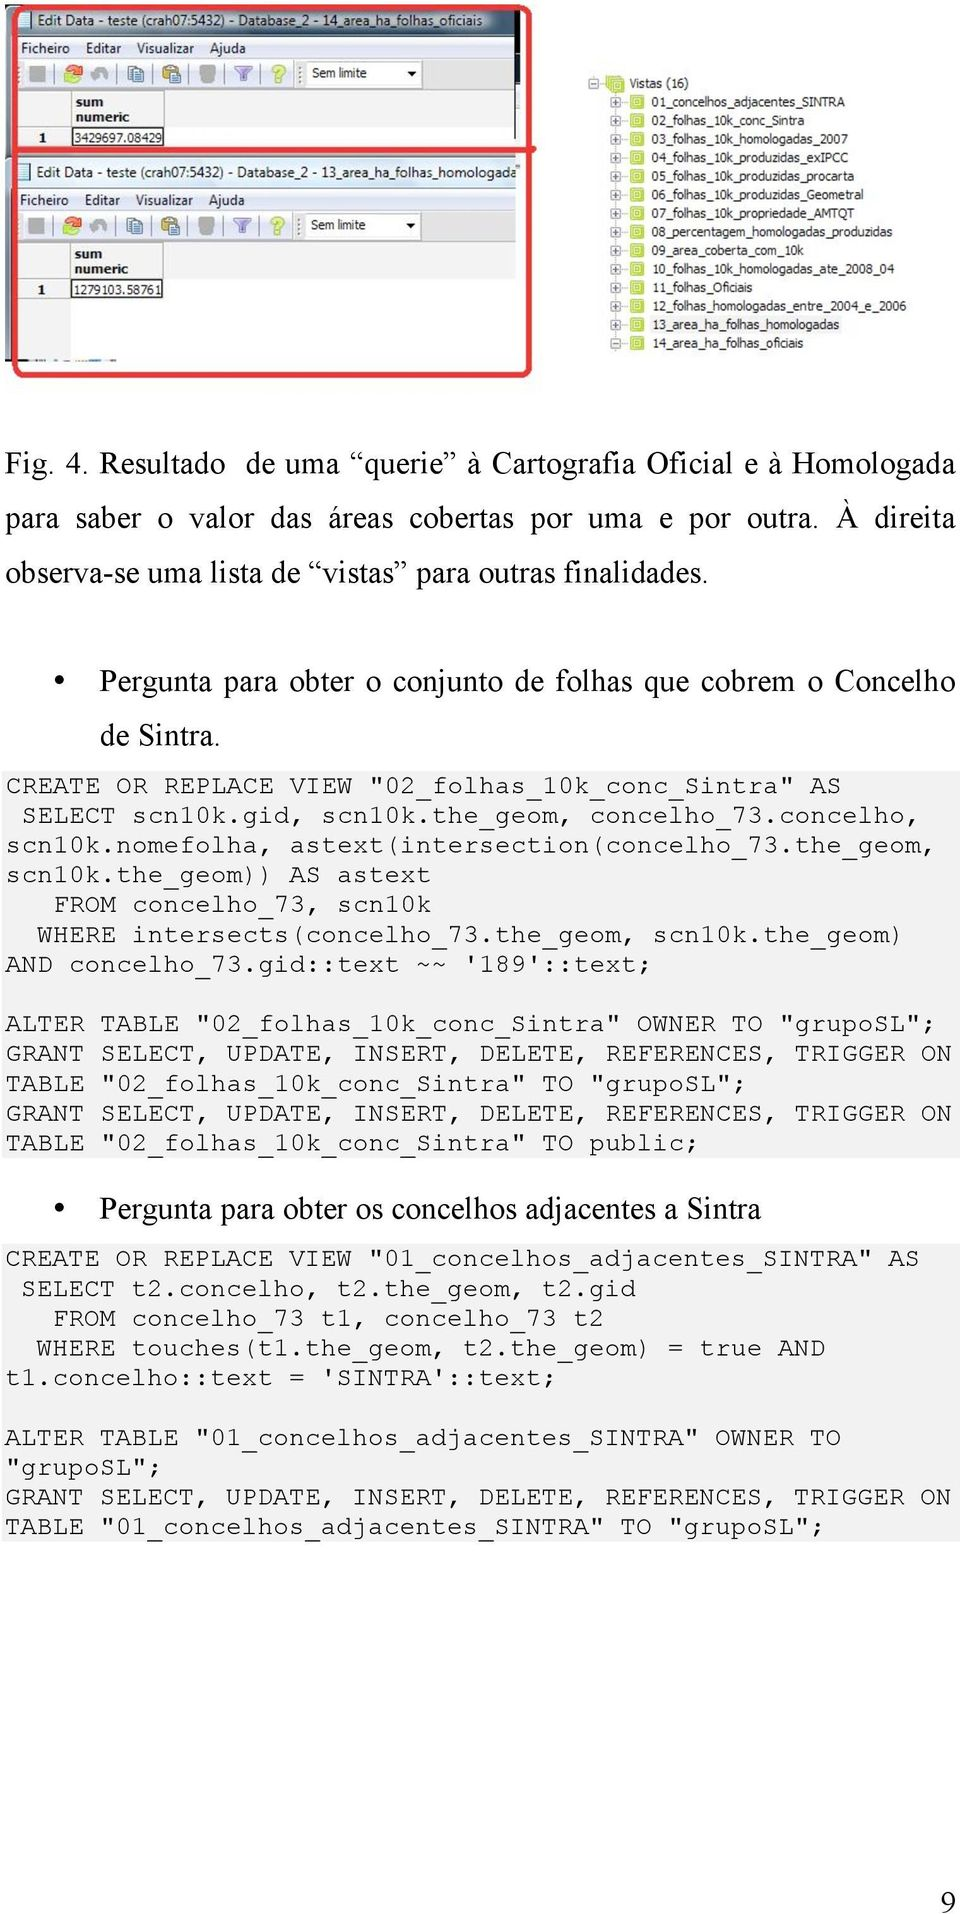 nomefolha, astext(intersection(concelho_73.the_geom, scn10k.the_geom)) AS astext FROM concelho_73, scn10k WHERE intersects(concelho_73.the_geom, scn10k.the_geom) AND concelho_73.